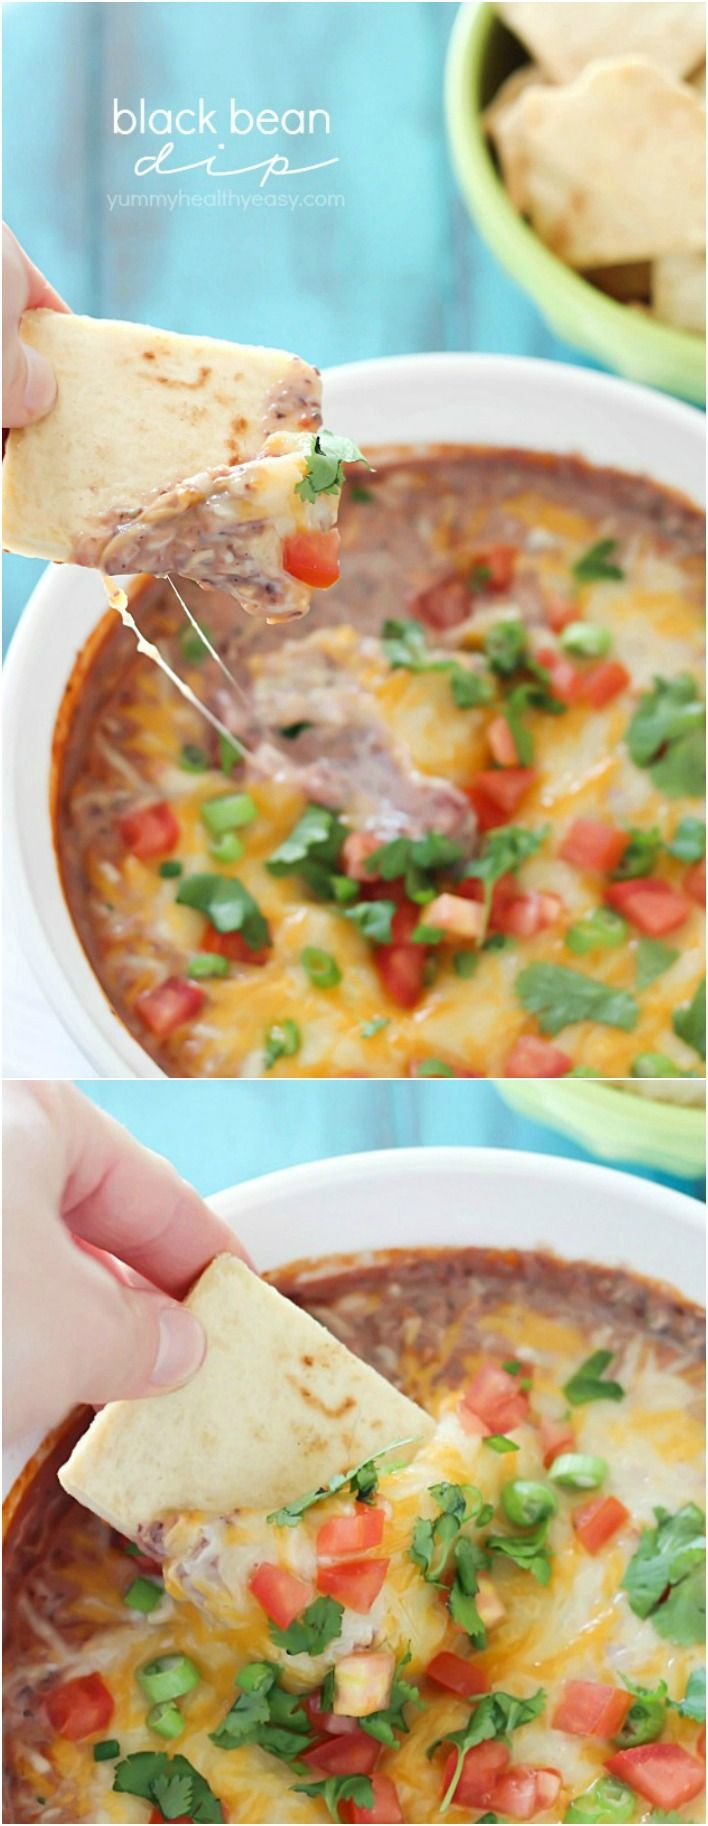 A skinny Black Bean Dip perfect for game day.: A skinny Black Bean Dip perfect for game day.